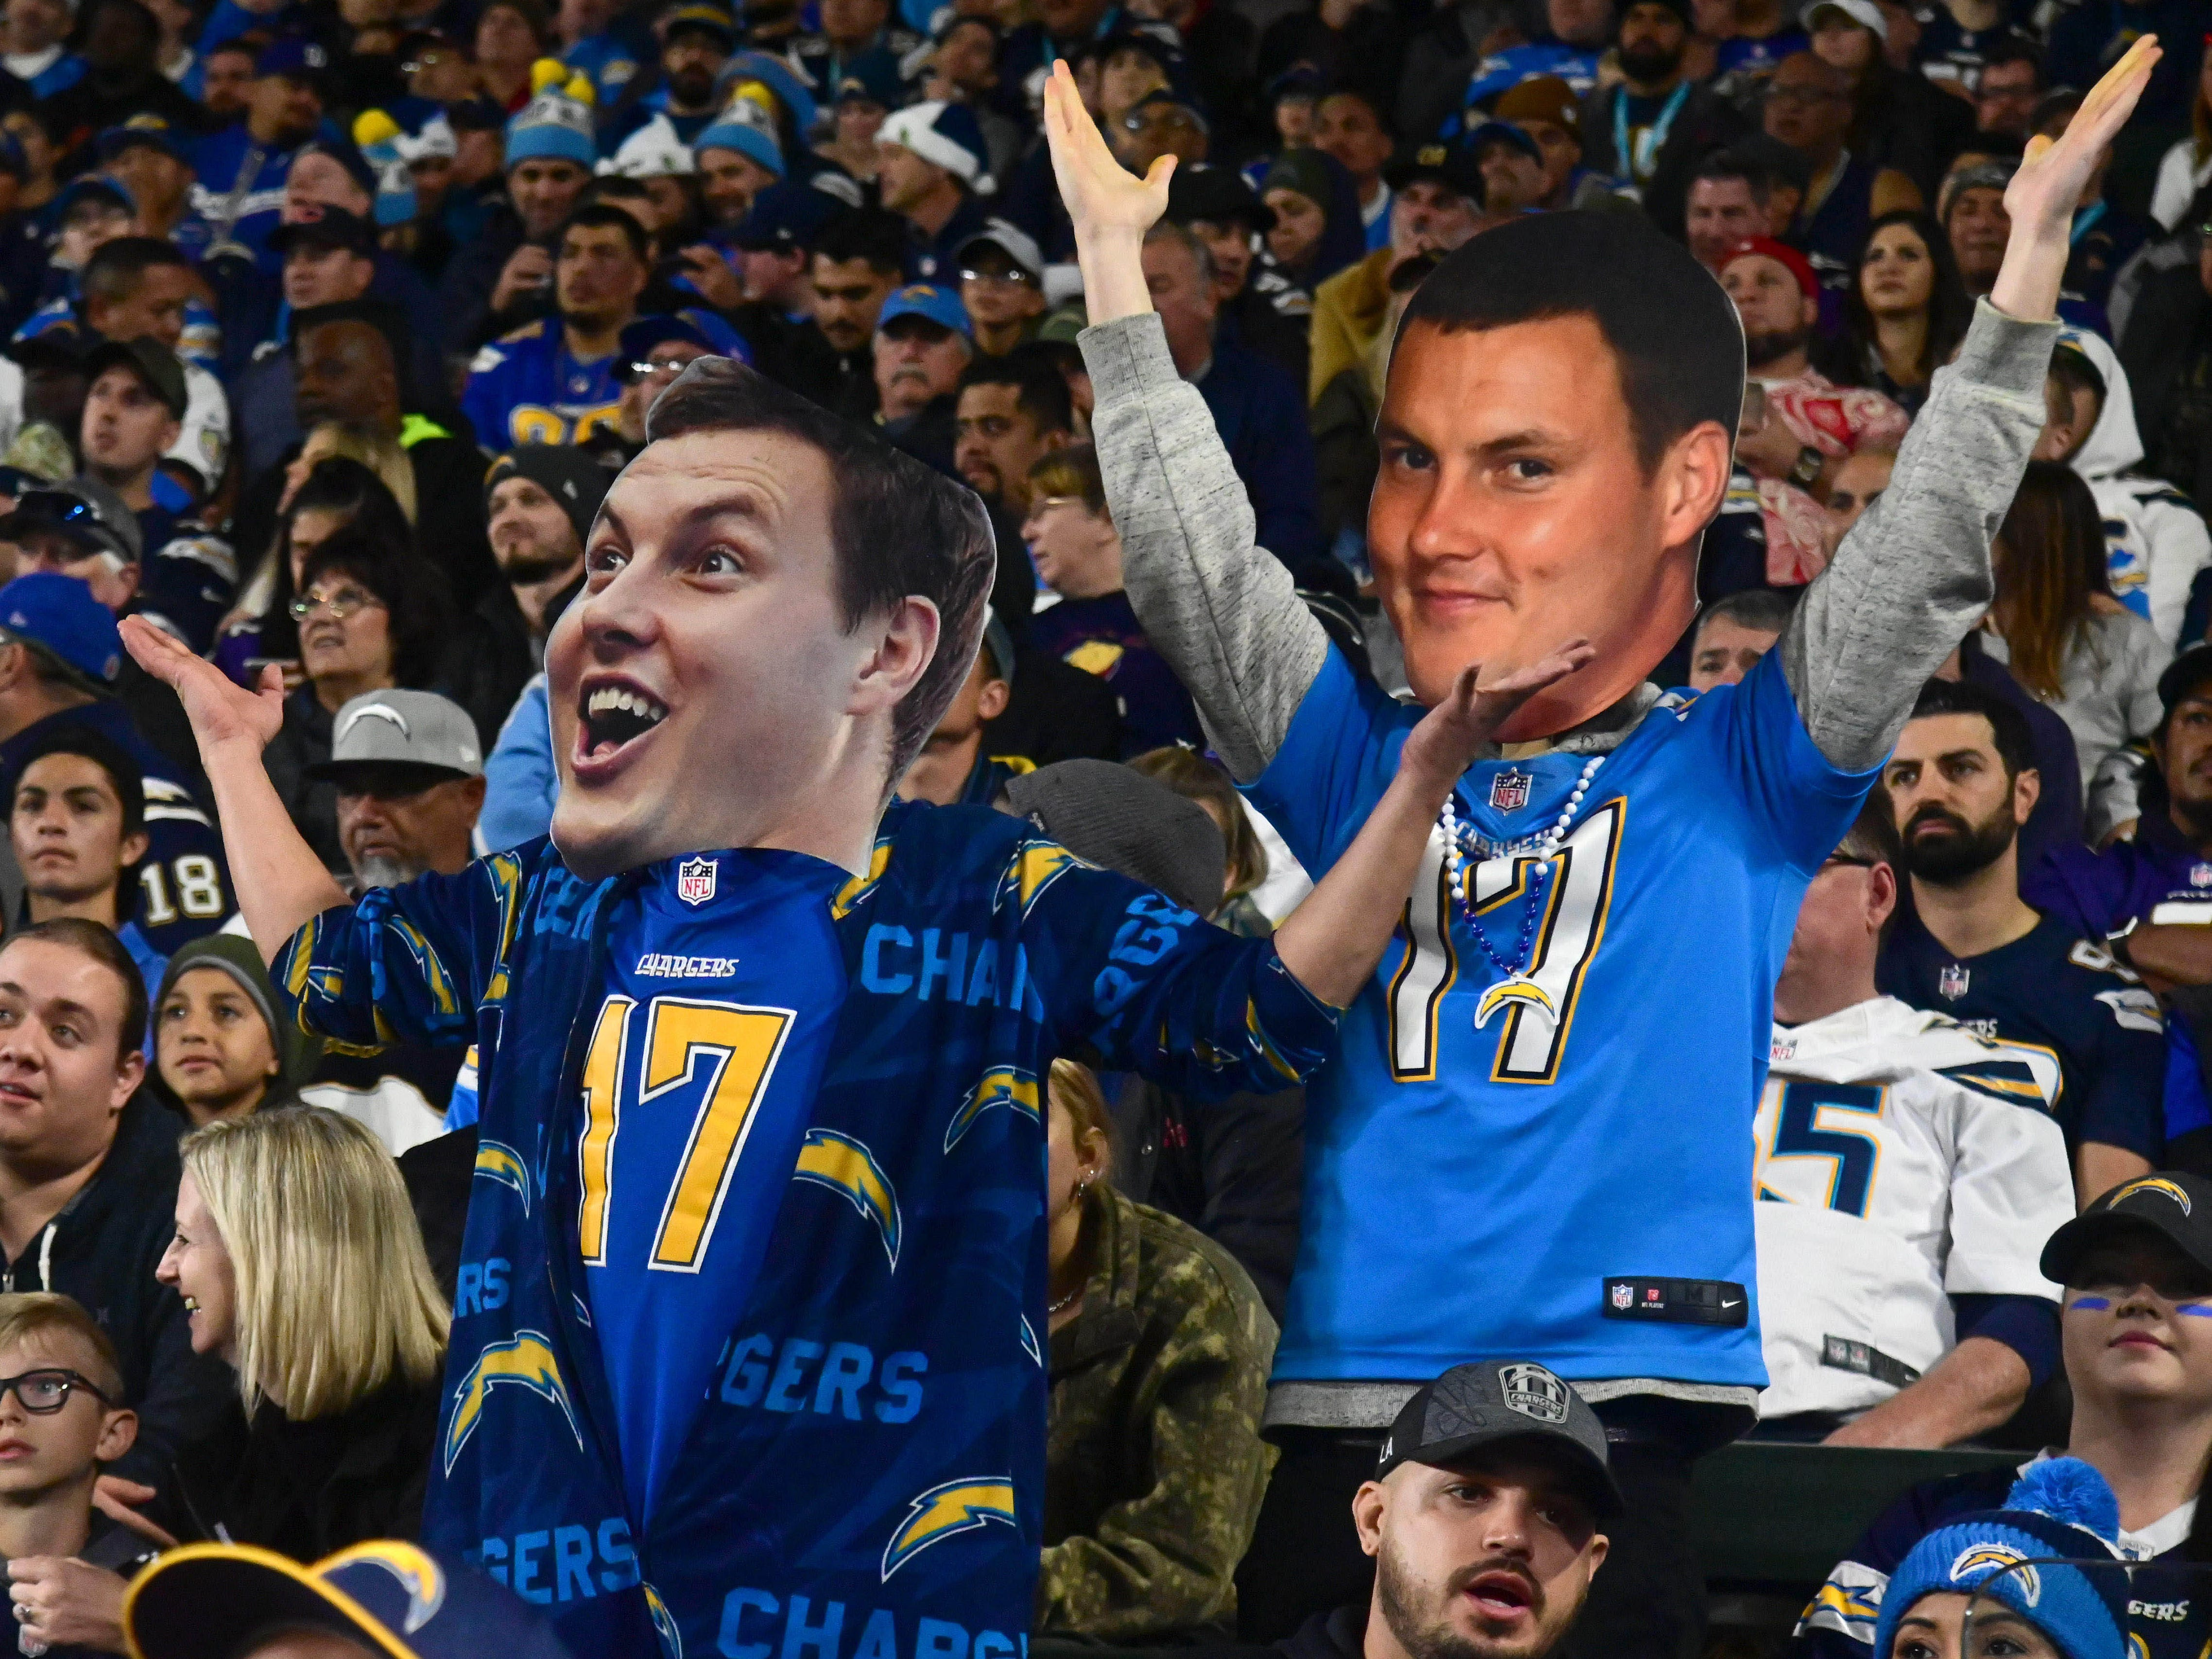 Los Angeles Chargers fans pose with a cutout of the head of quarterback Philip Rivers during the game against the Baltimore Ravens at StubHub Center.